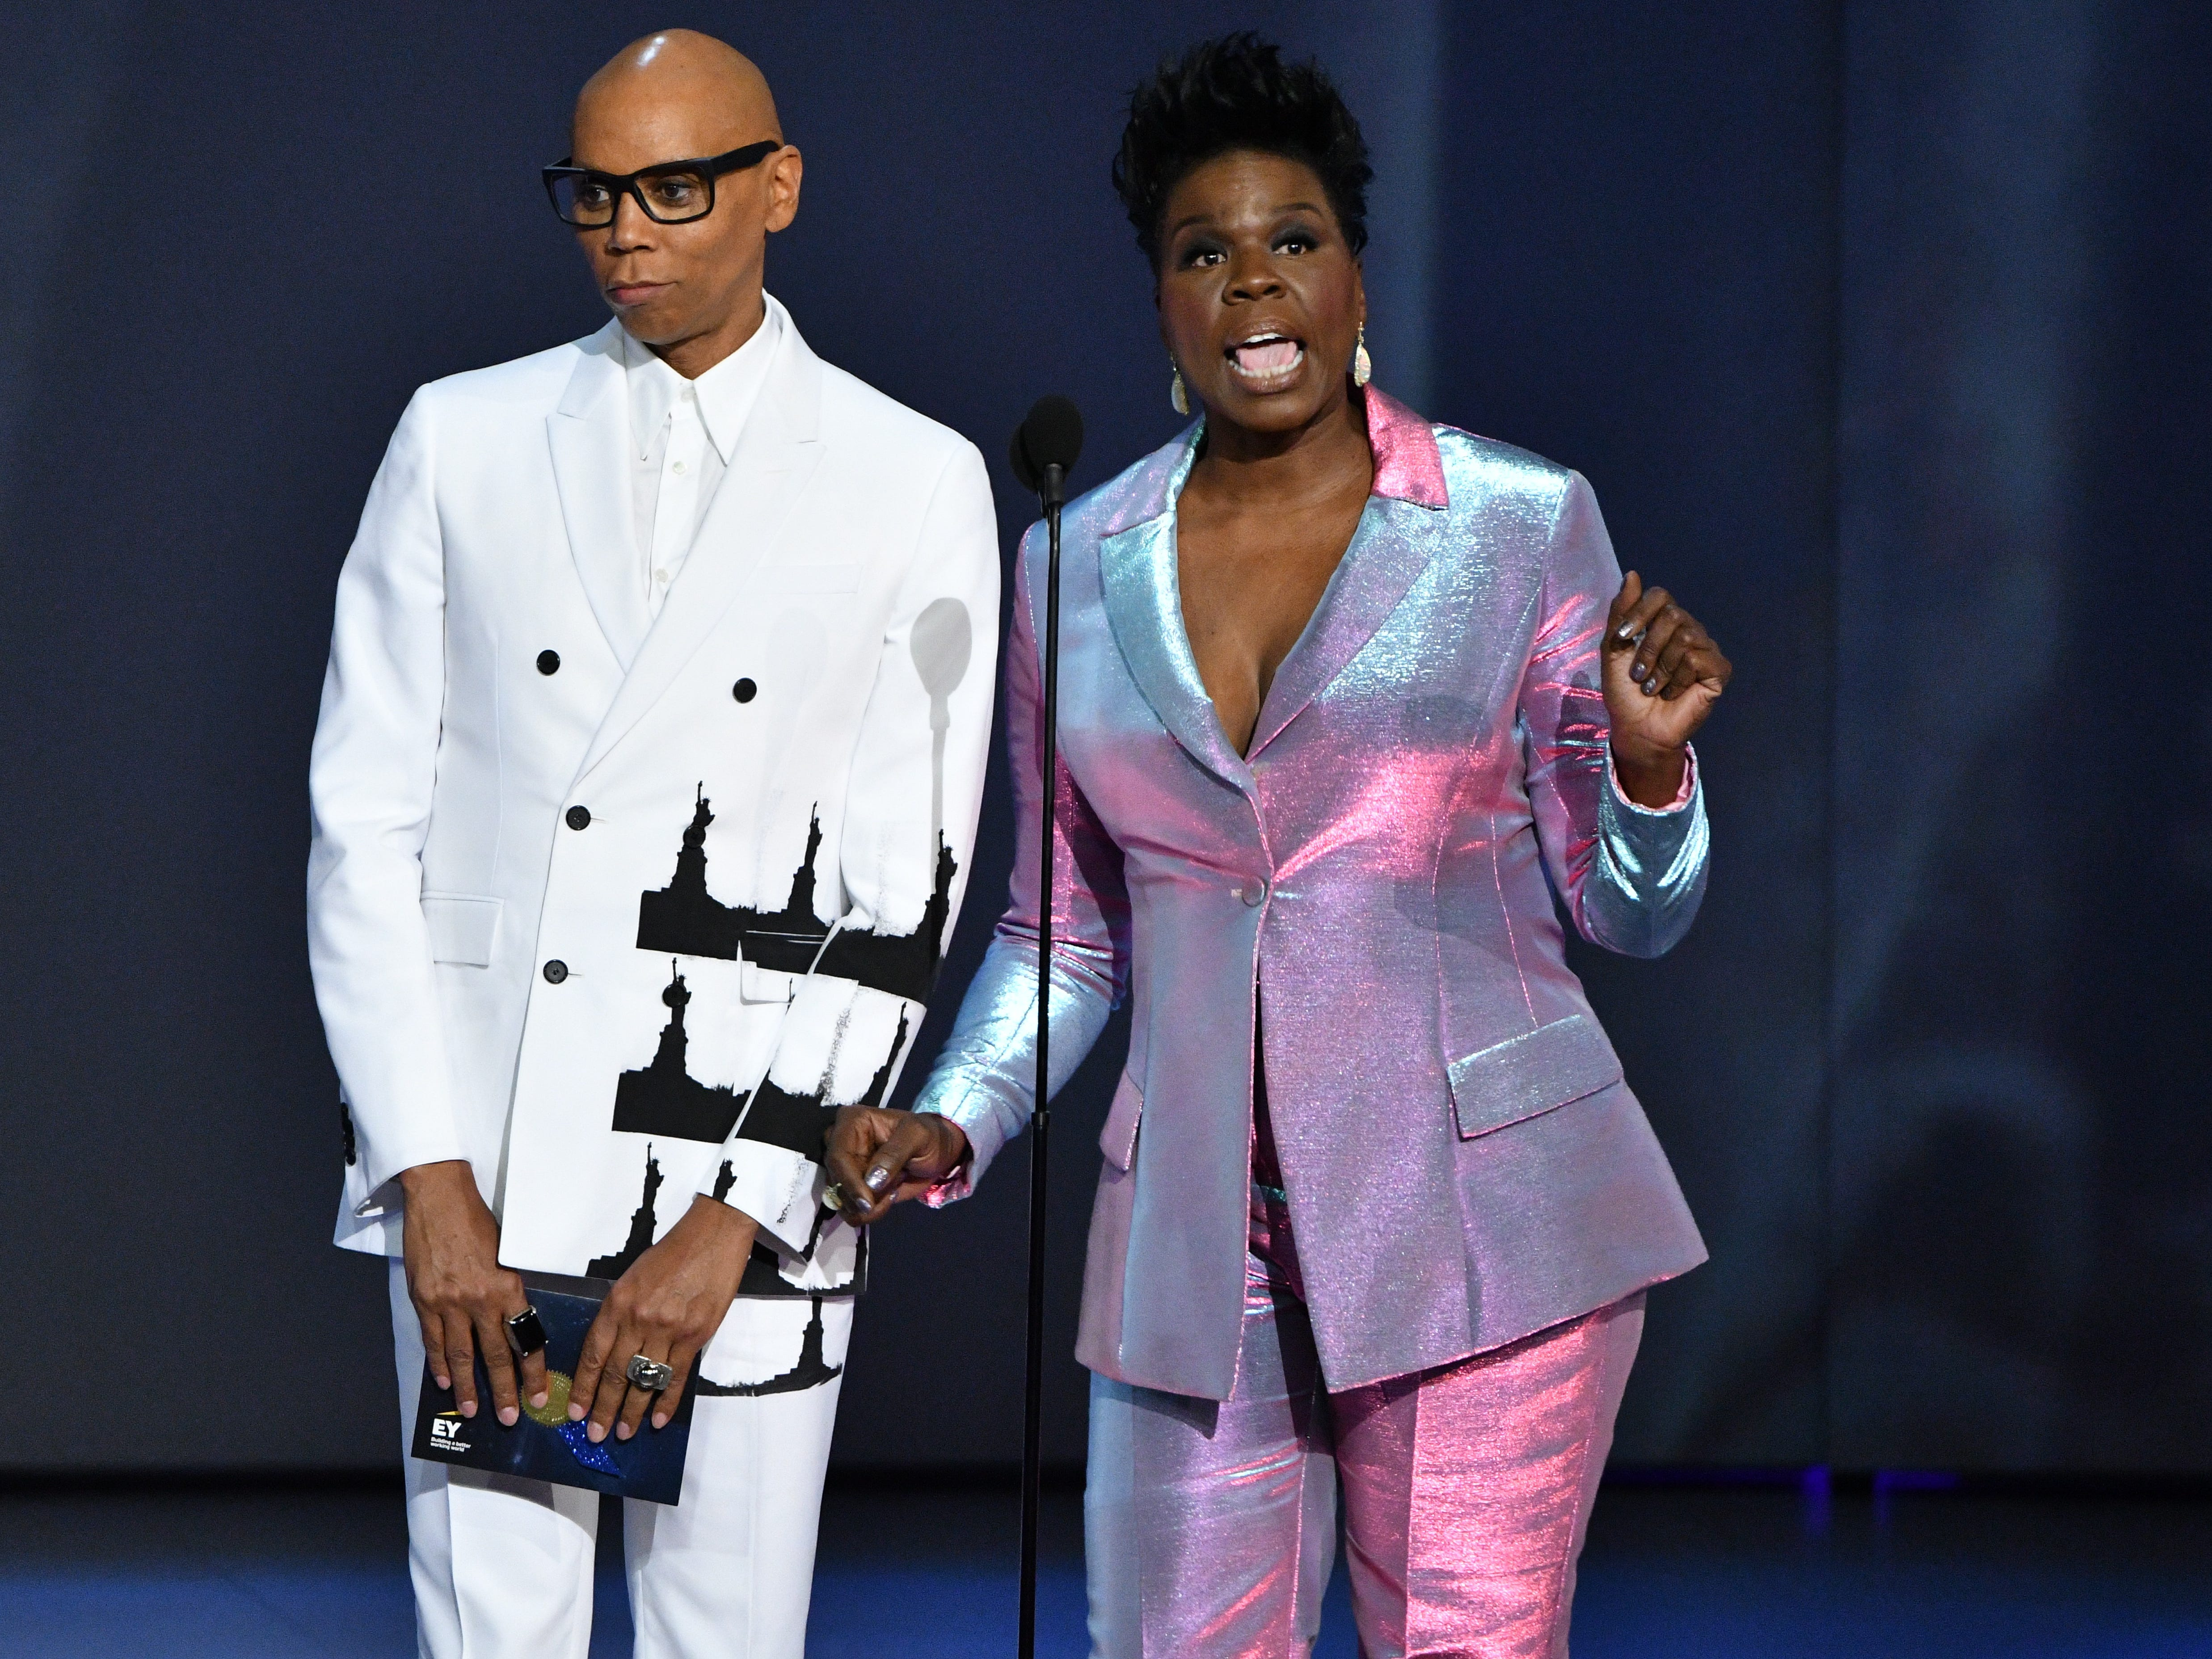 RuPaul Charles, left, and Leslie Jones present the award for lead actress in a limited series or movie.